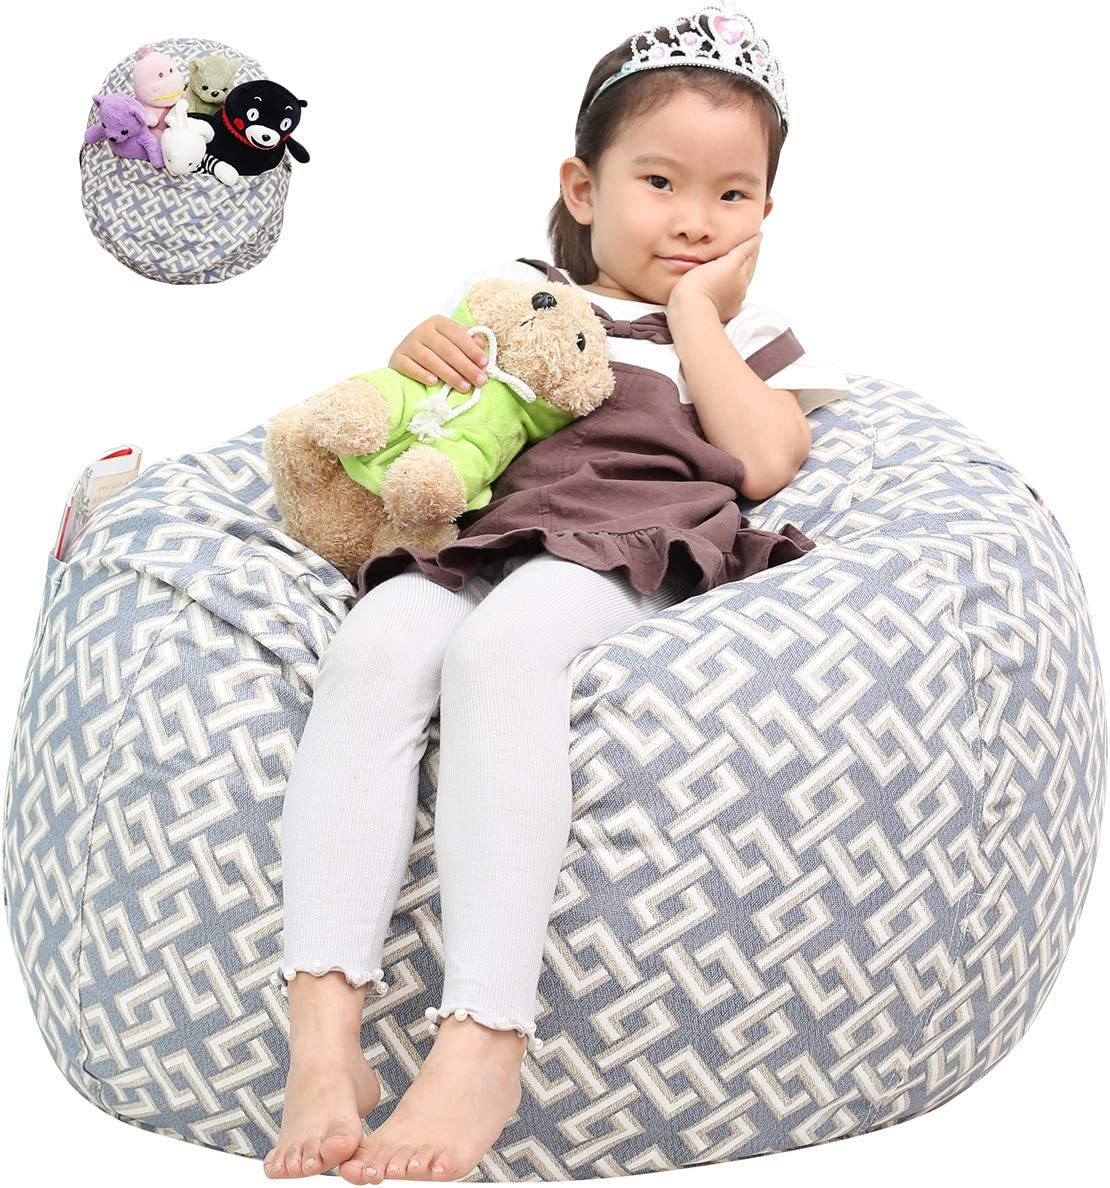 |Toy Storage Bag| Toddlers and Teens Great Eagle Stuffed Animal Storage Bean Bag Chair Cover|38 Extra Large Cotton Canvas Bean Bag Chair for Kids Boys or Girls Beige//Cactuses